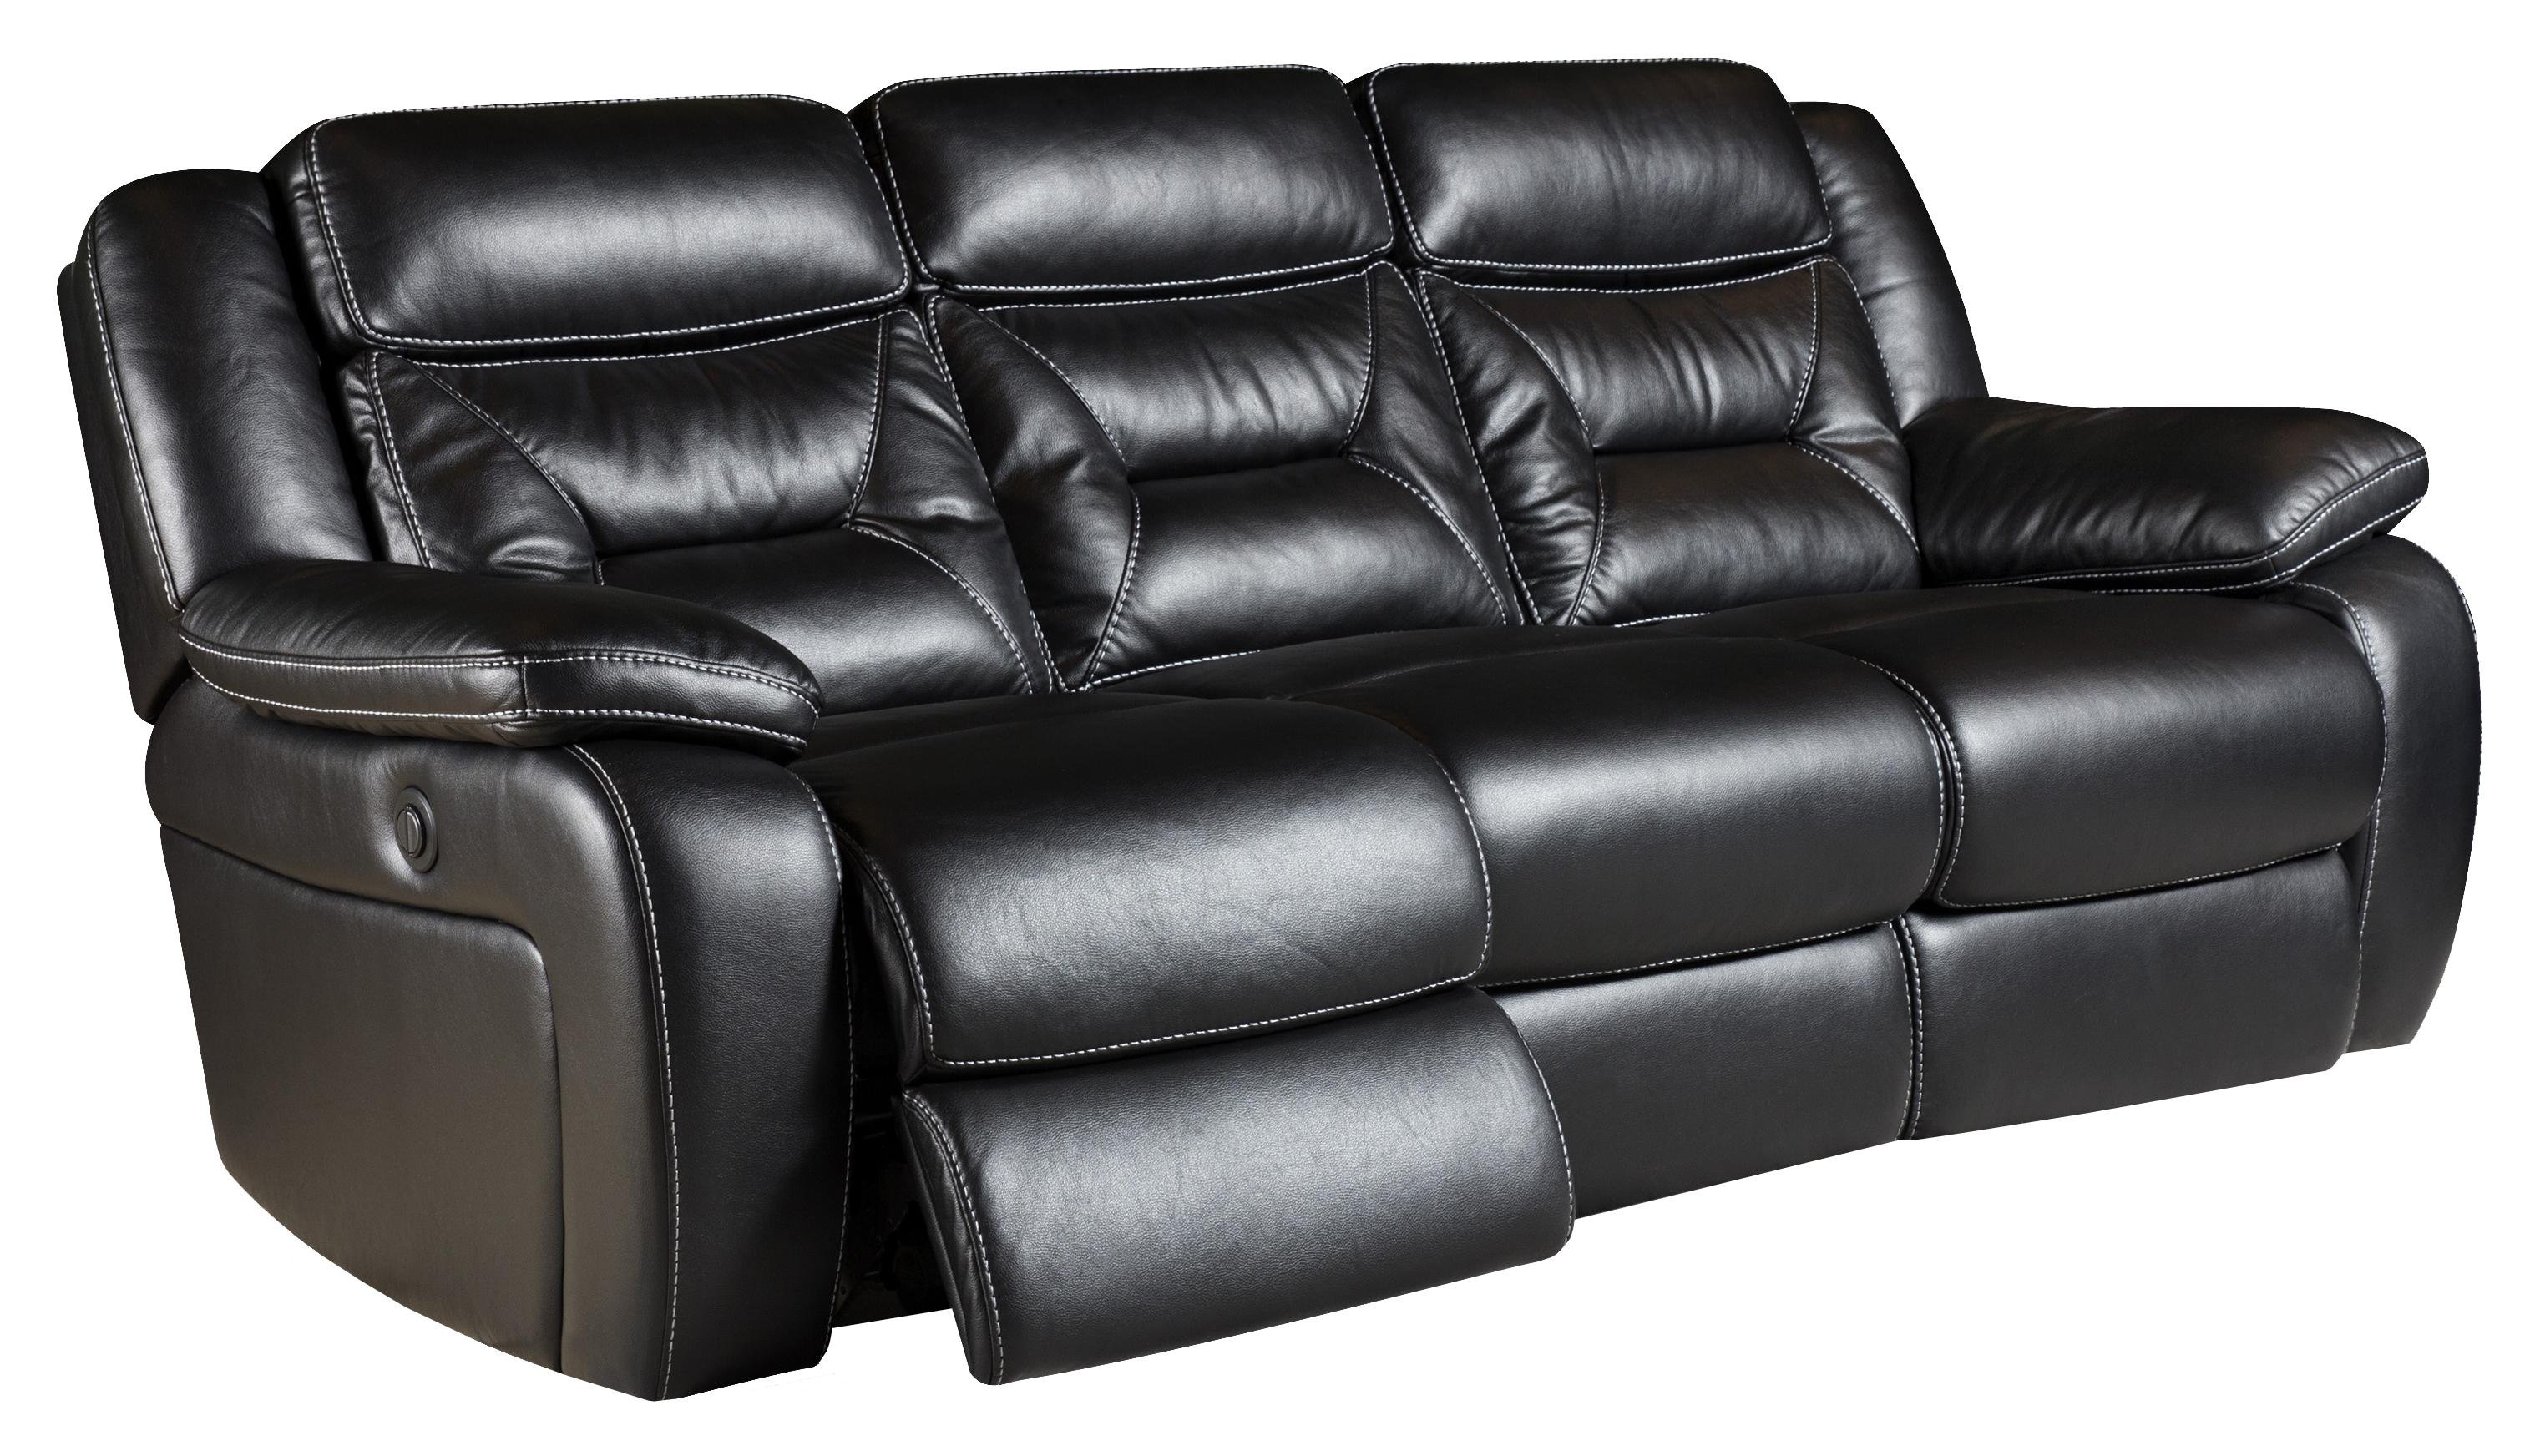 Jamestown Reclining Sofa with 2 Recline Seats Belfort Furniture